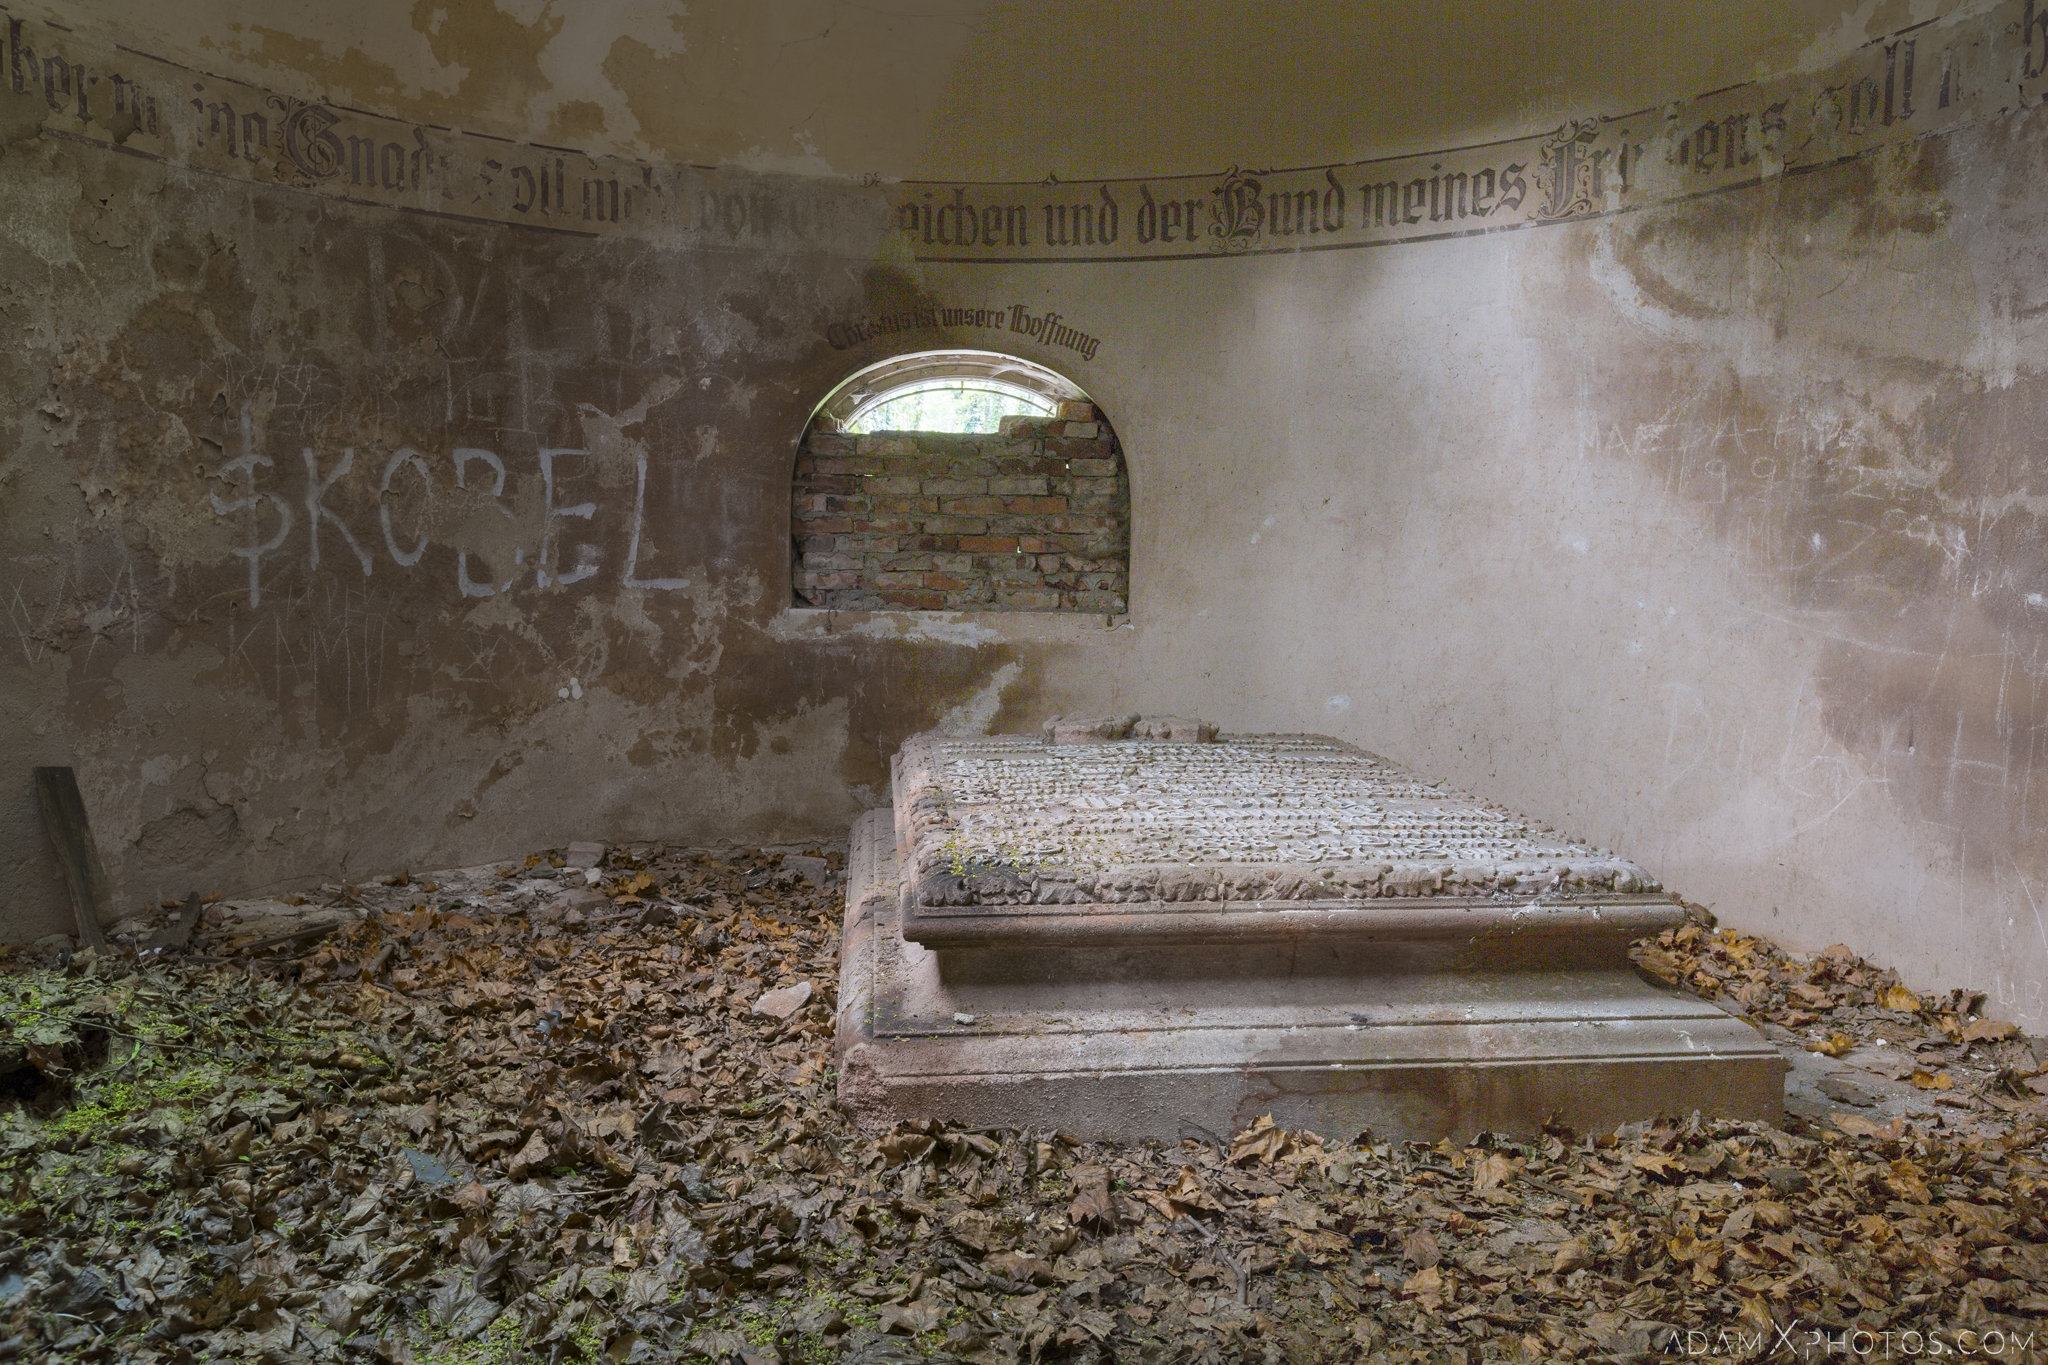 Crypt stone engraving german Chapel Church G Urbex Poland Adam X Urban Exploration Access 2016 Abandoned decay lost forgotten derelict location haunting eerie